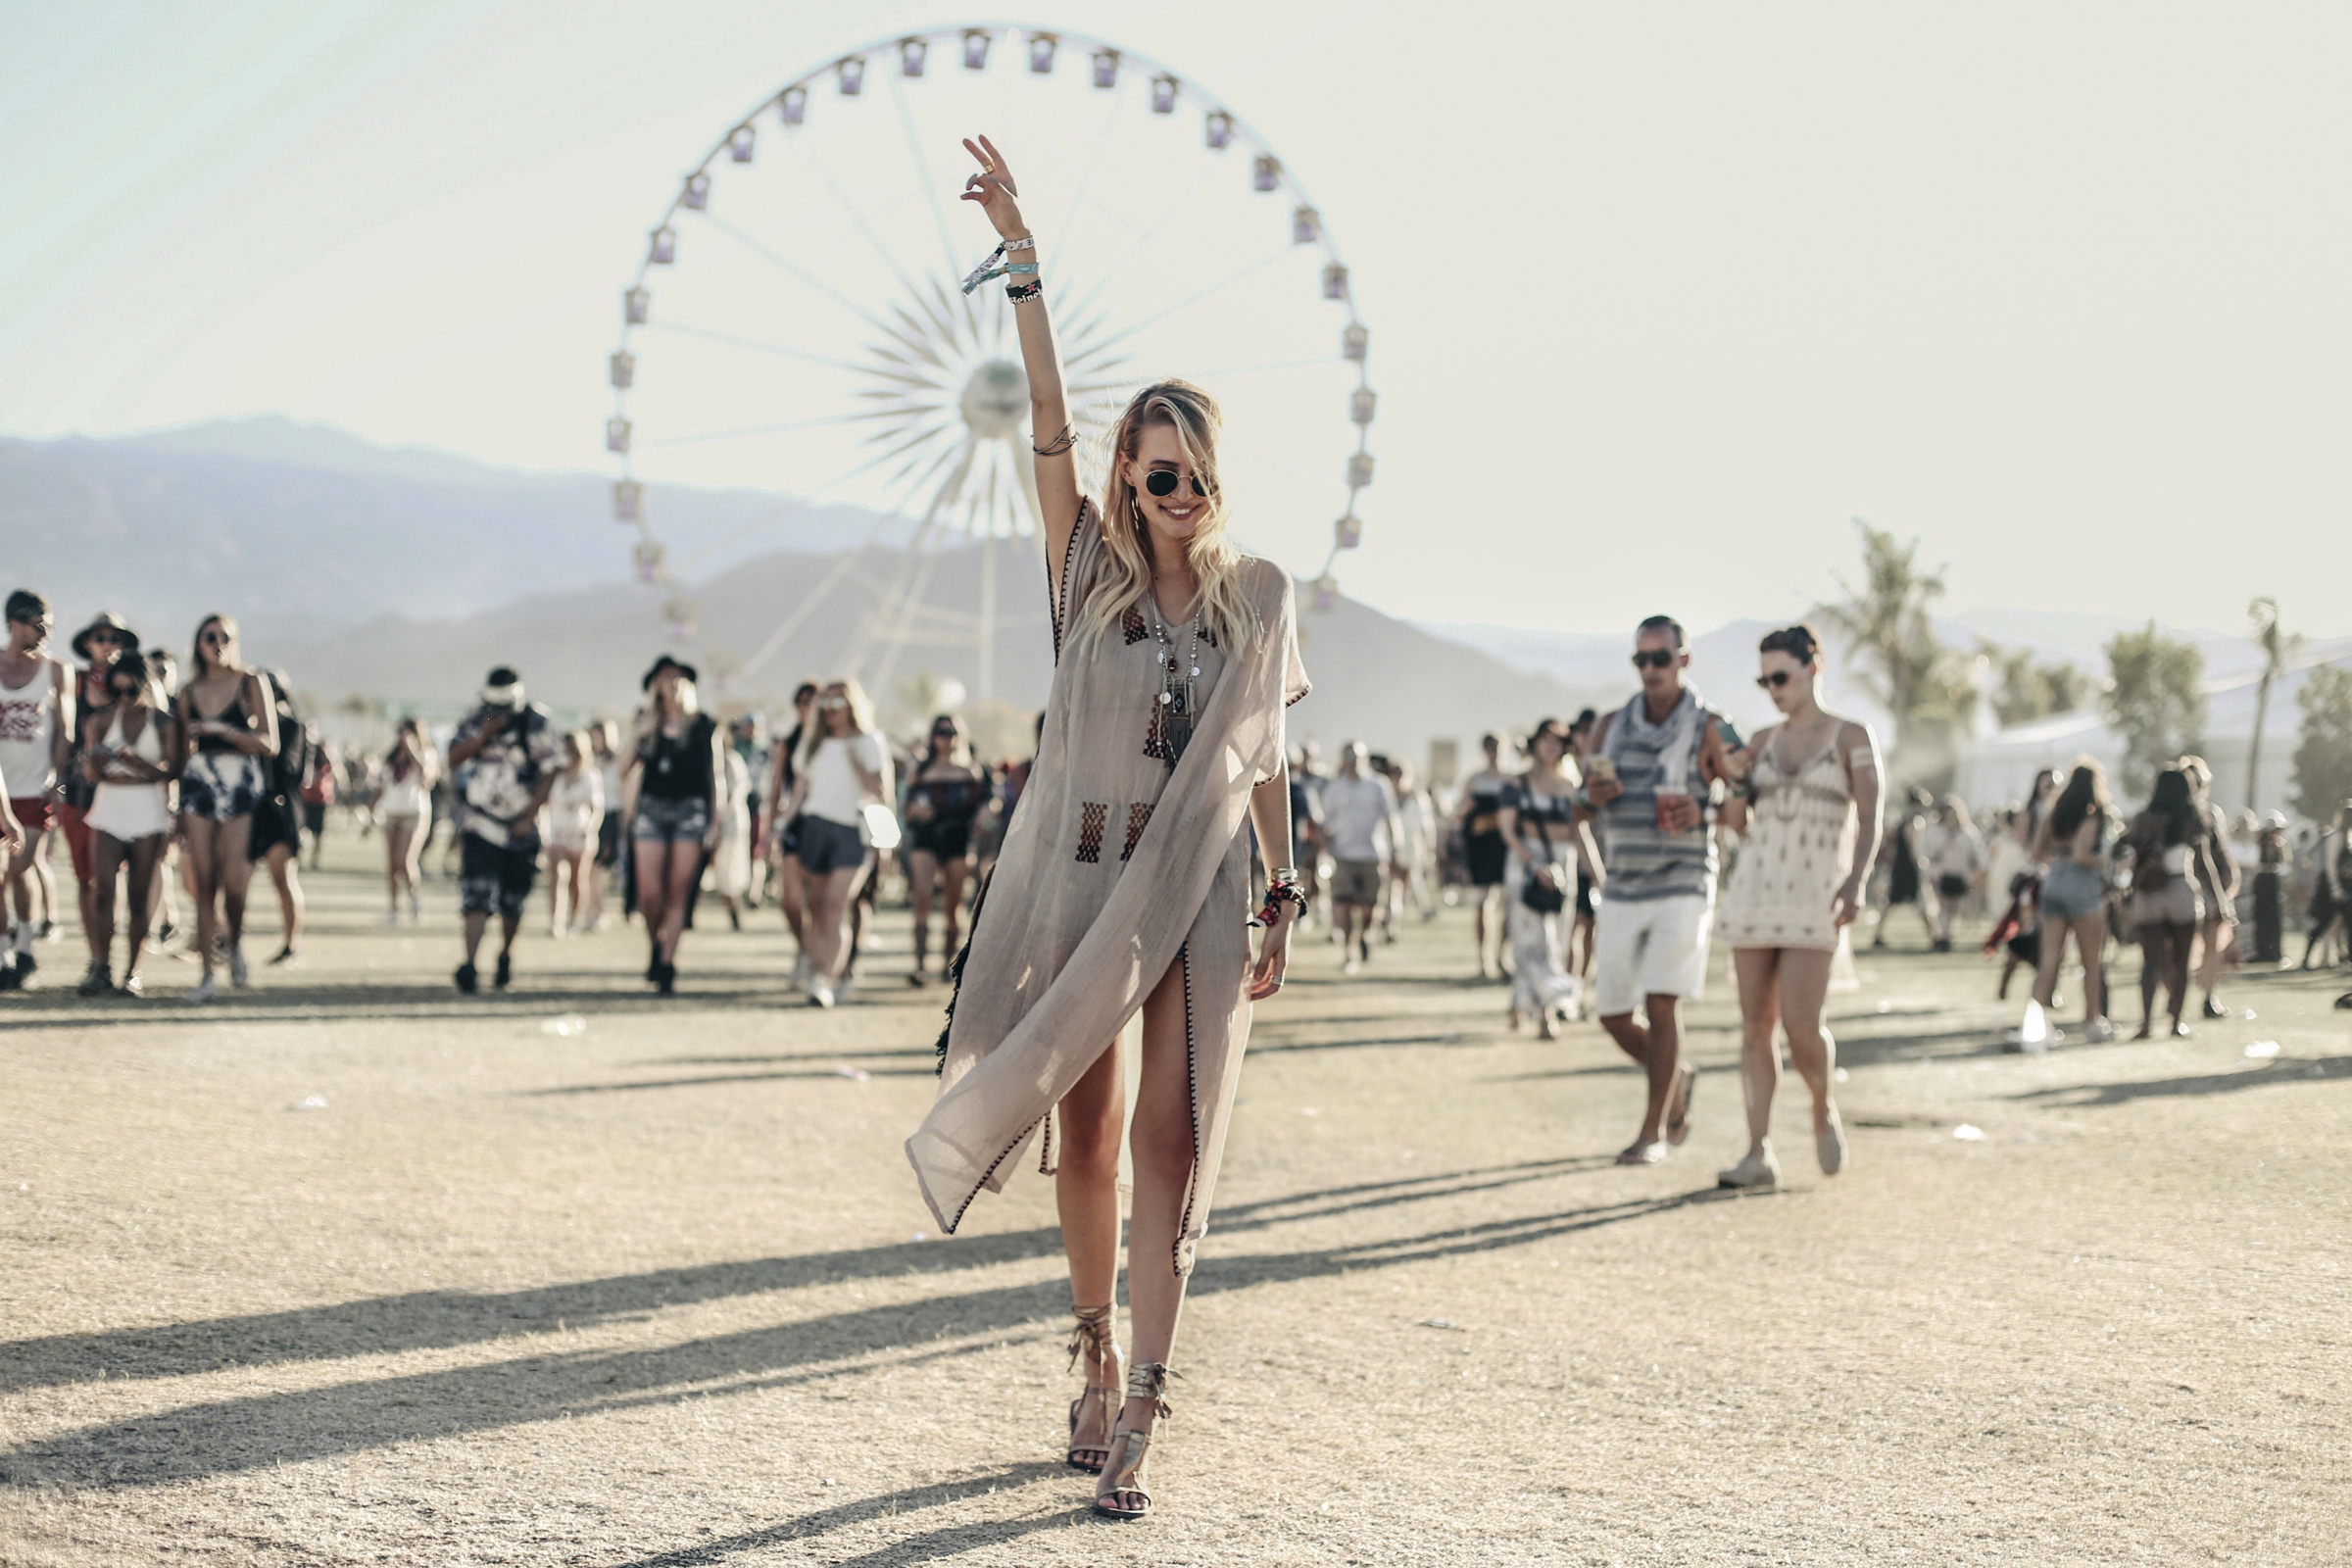 The big wheel | Coachella